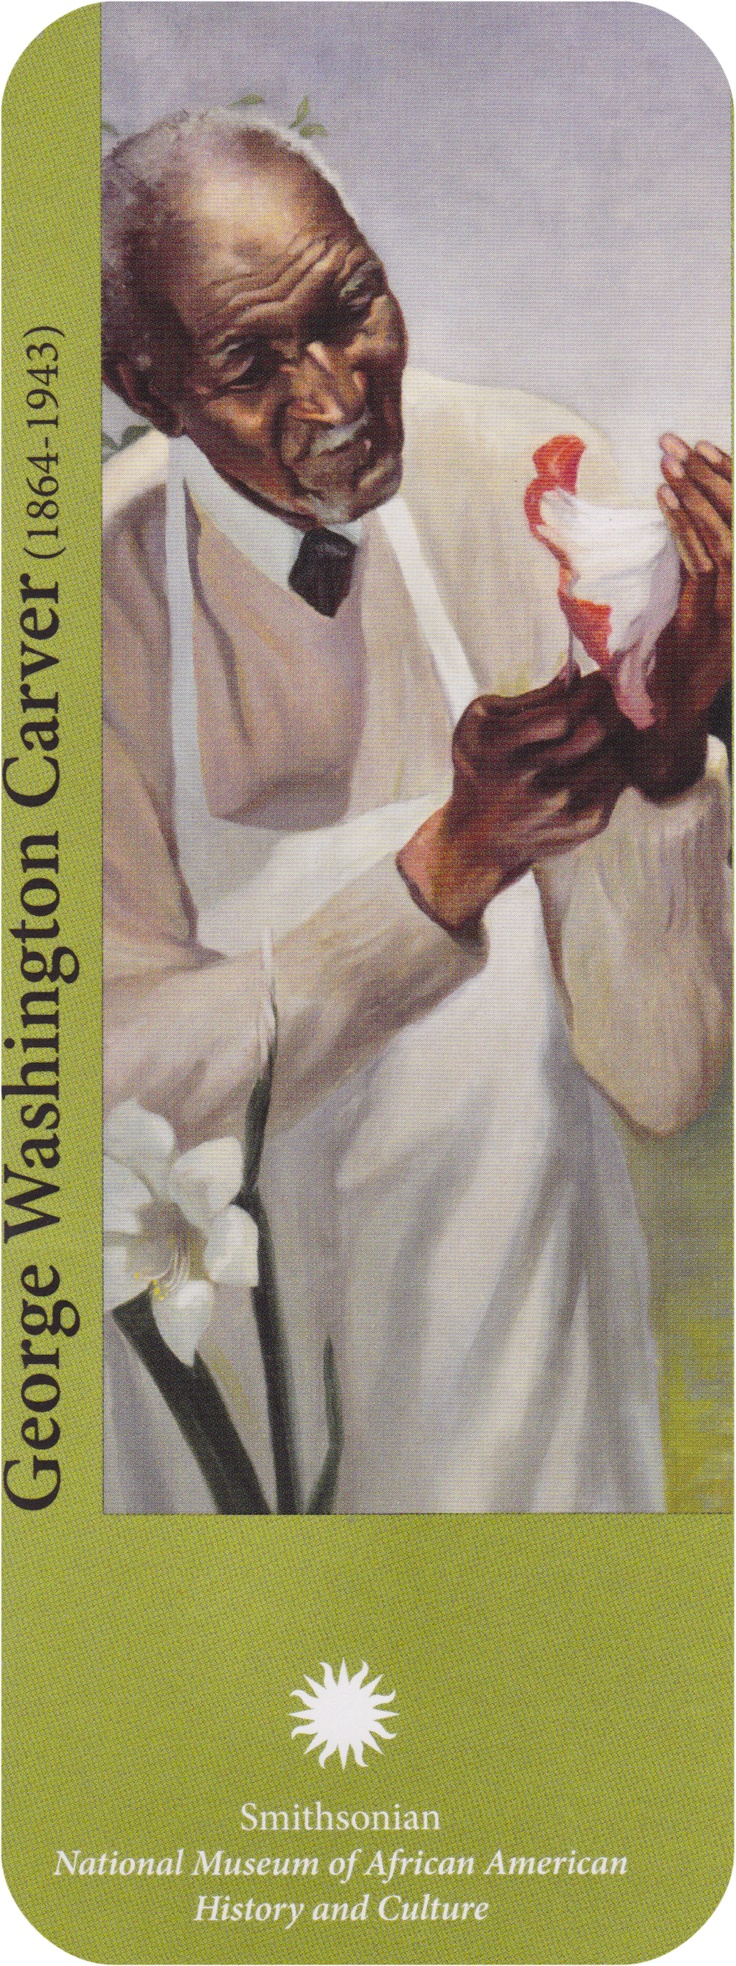 68 best my humble hero george washington carver images on